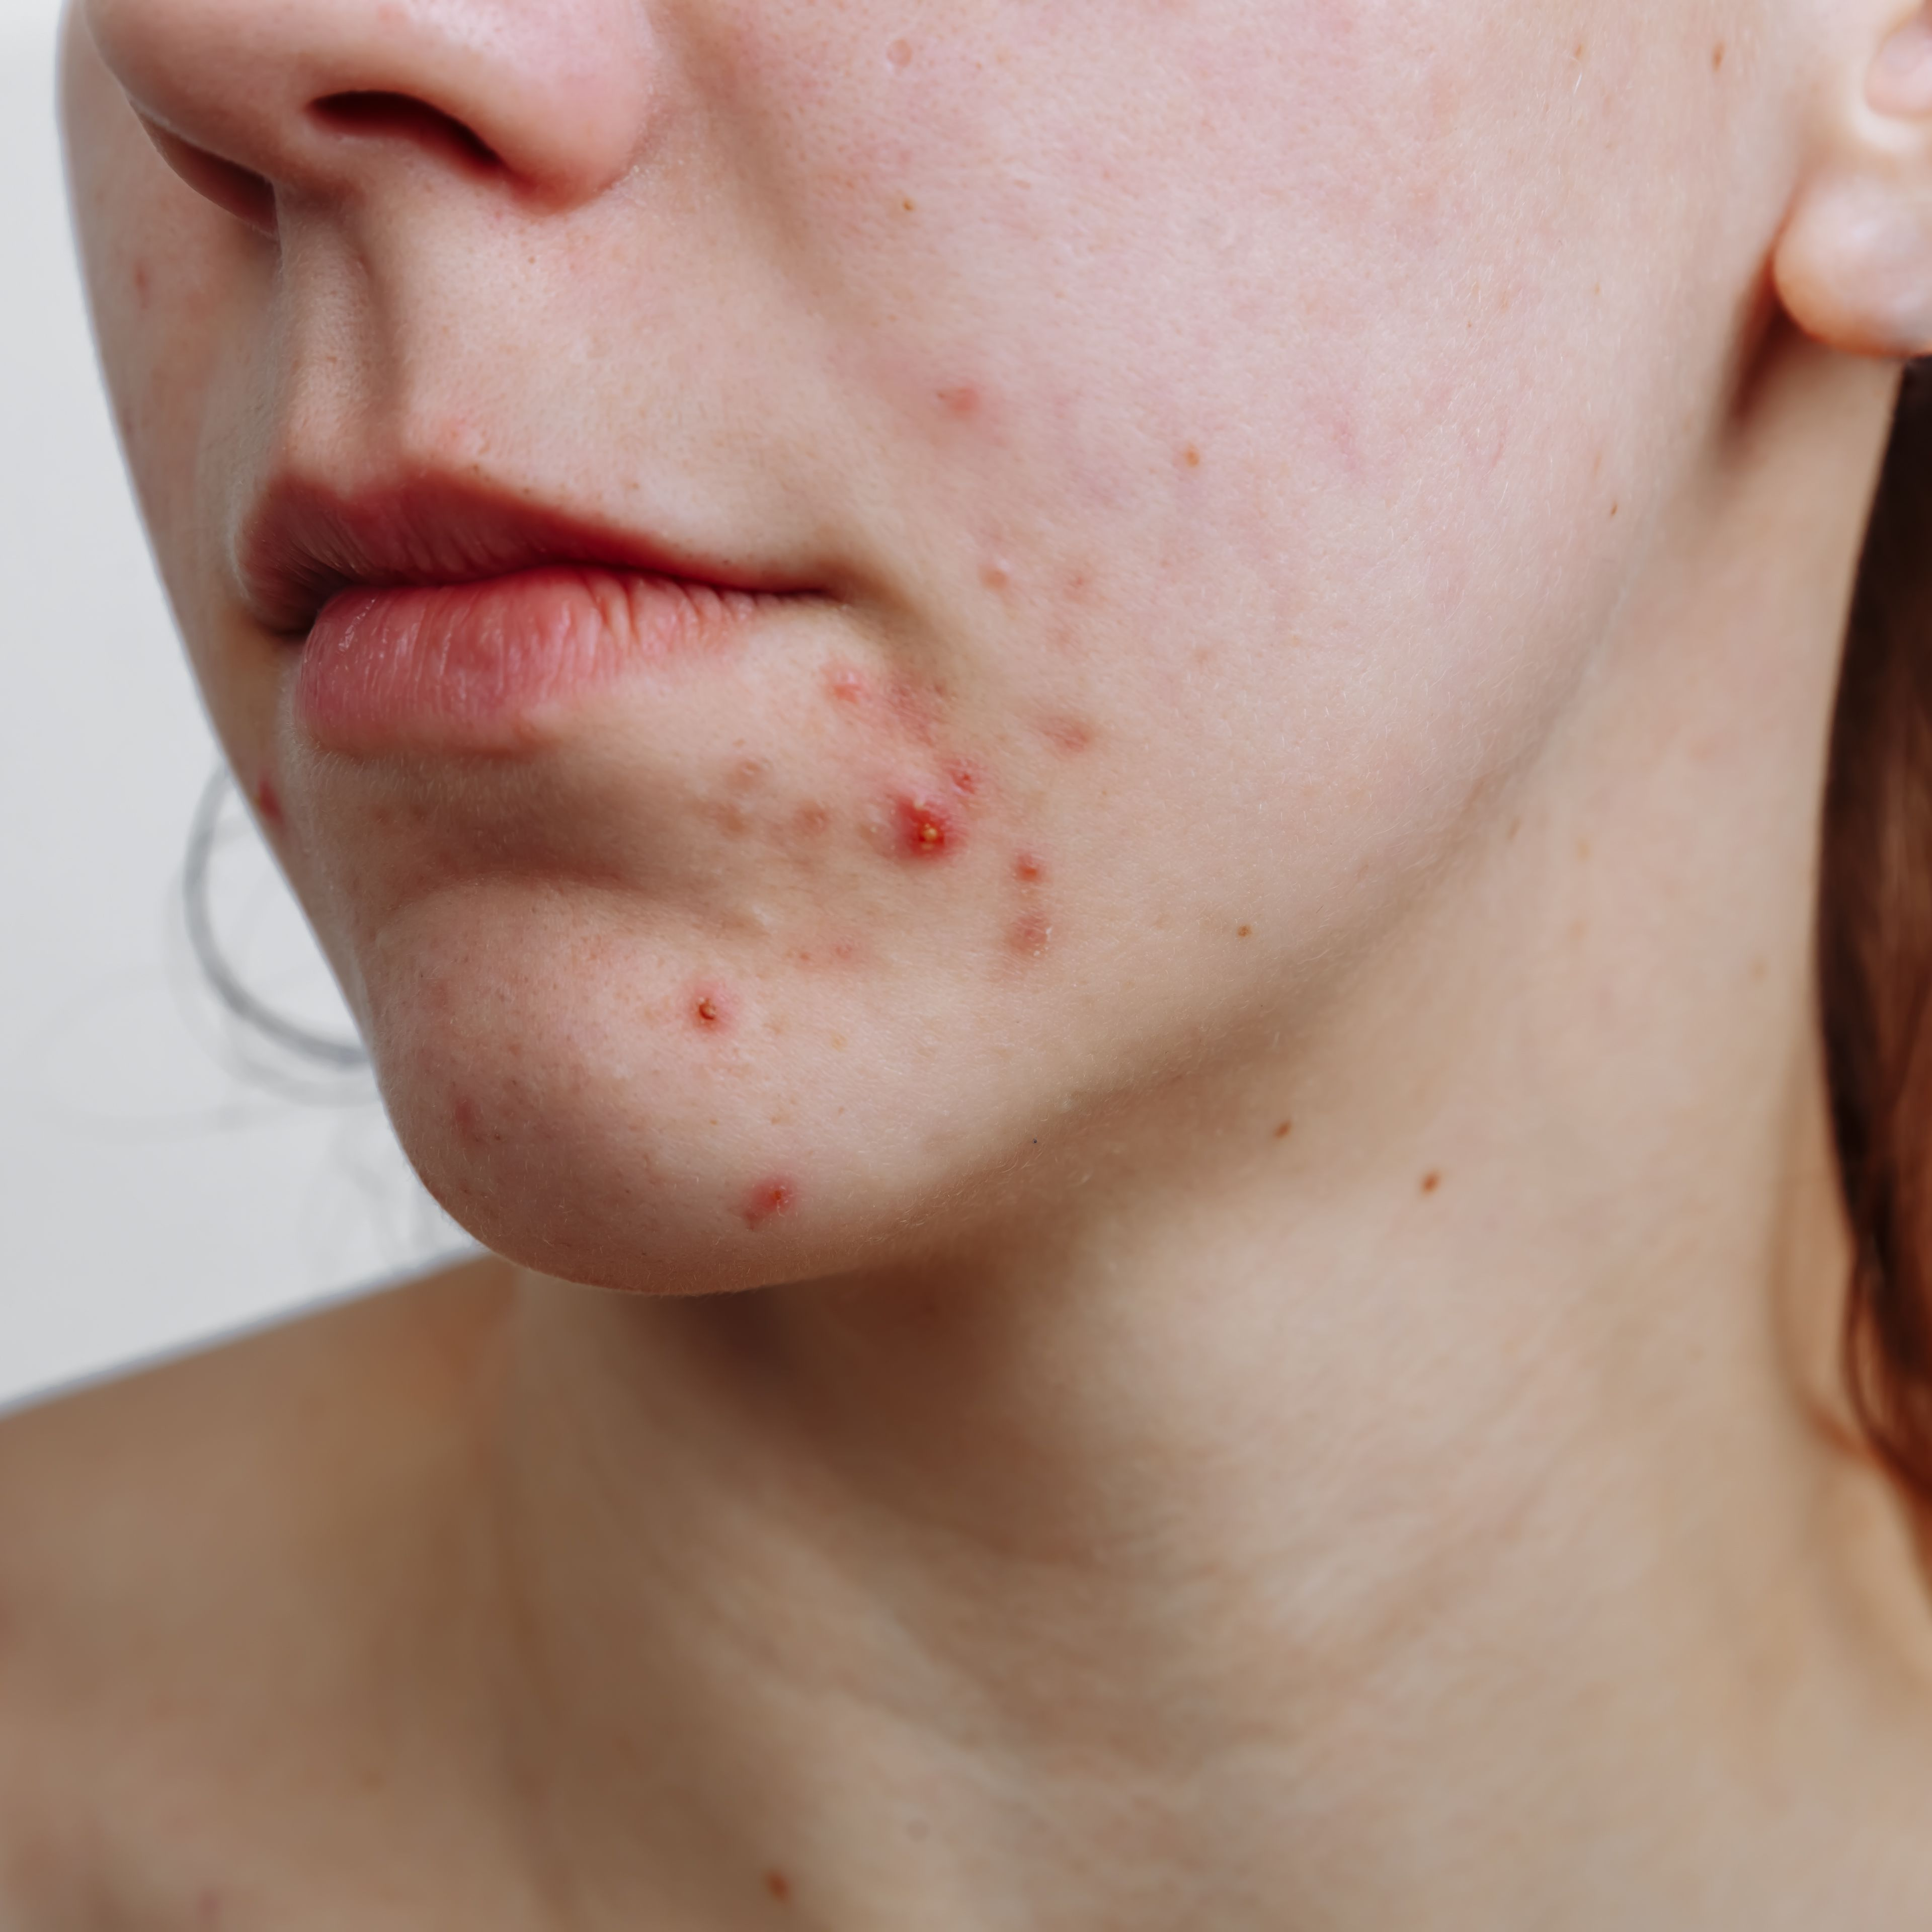 Can You Catch Acne From Someone Else?